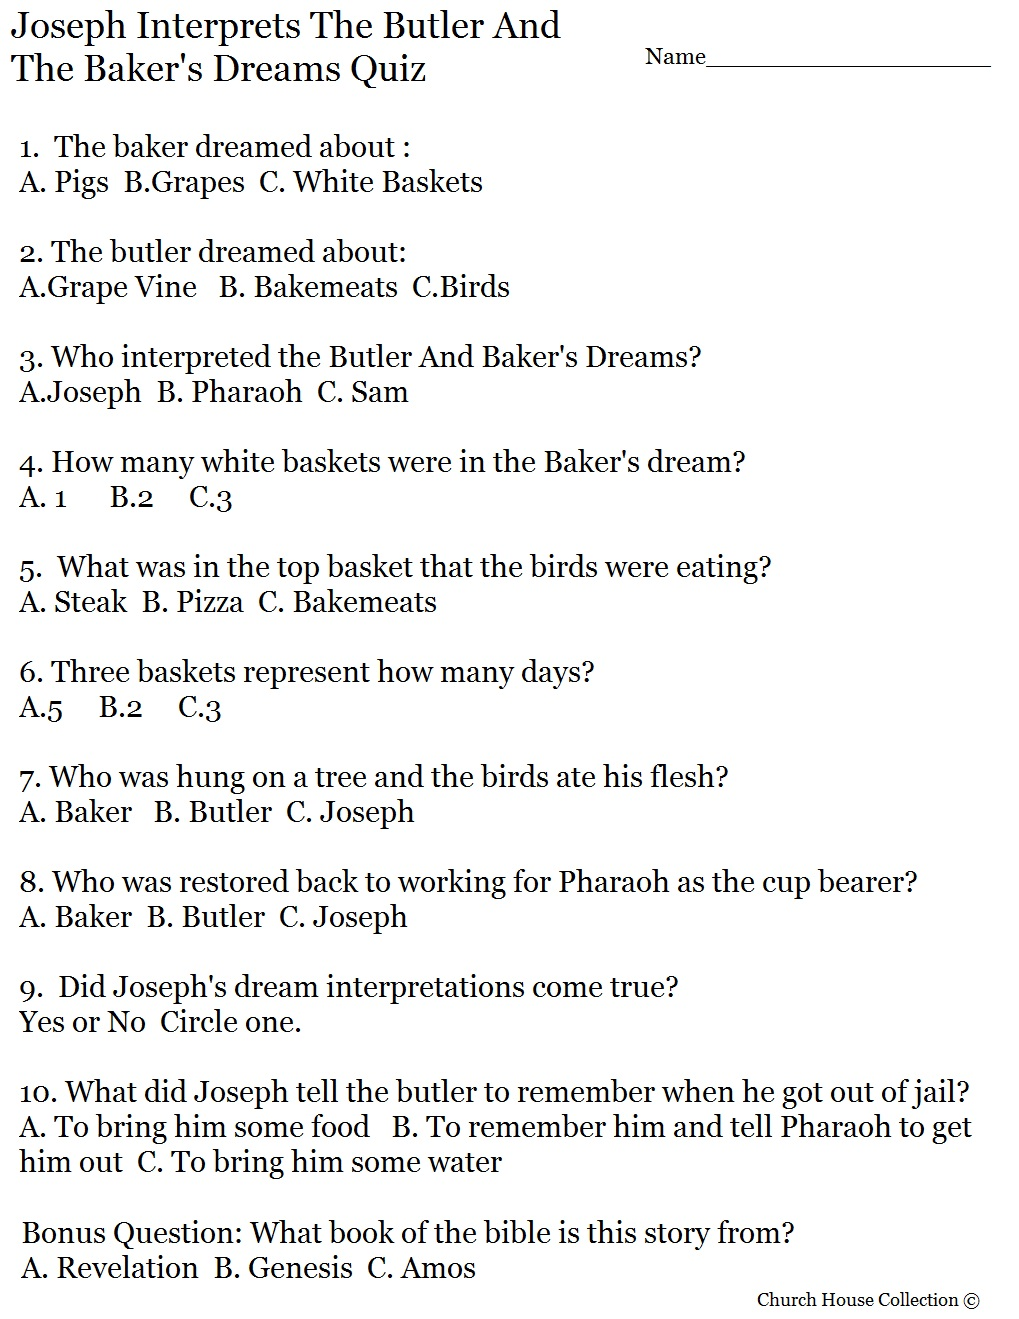 Joseph Interprets Butler And Baker's Dream Quiz